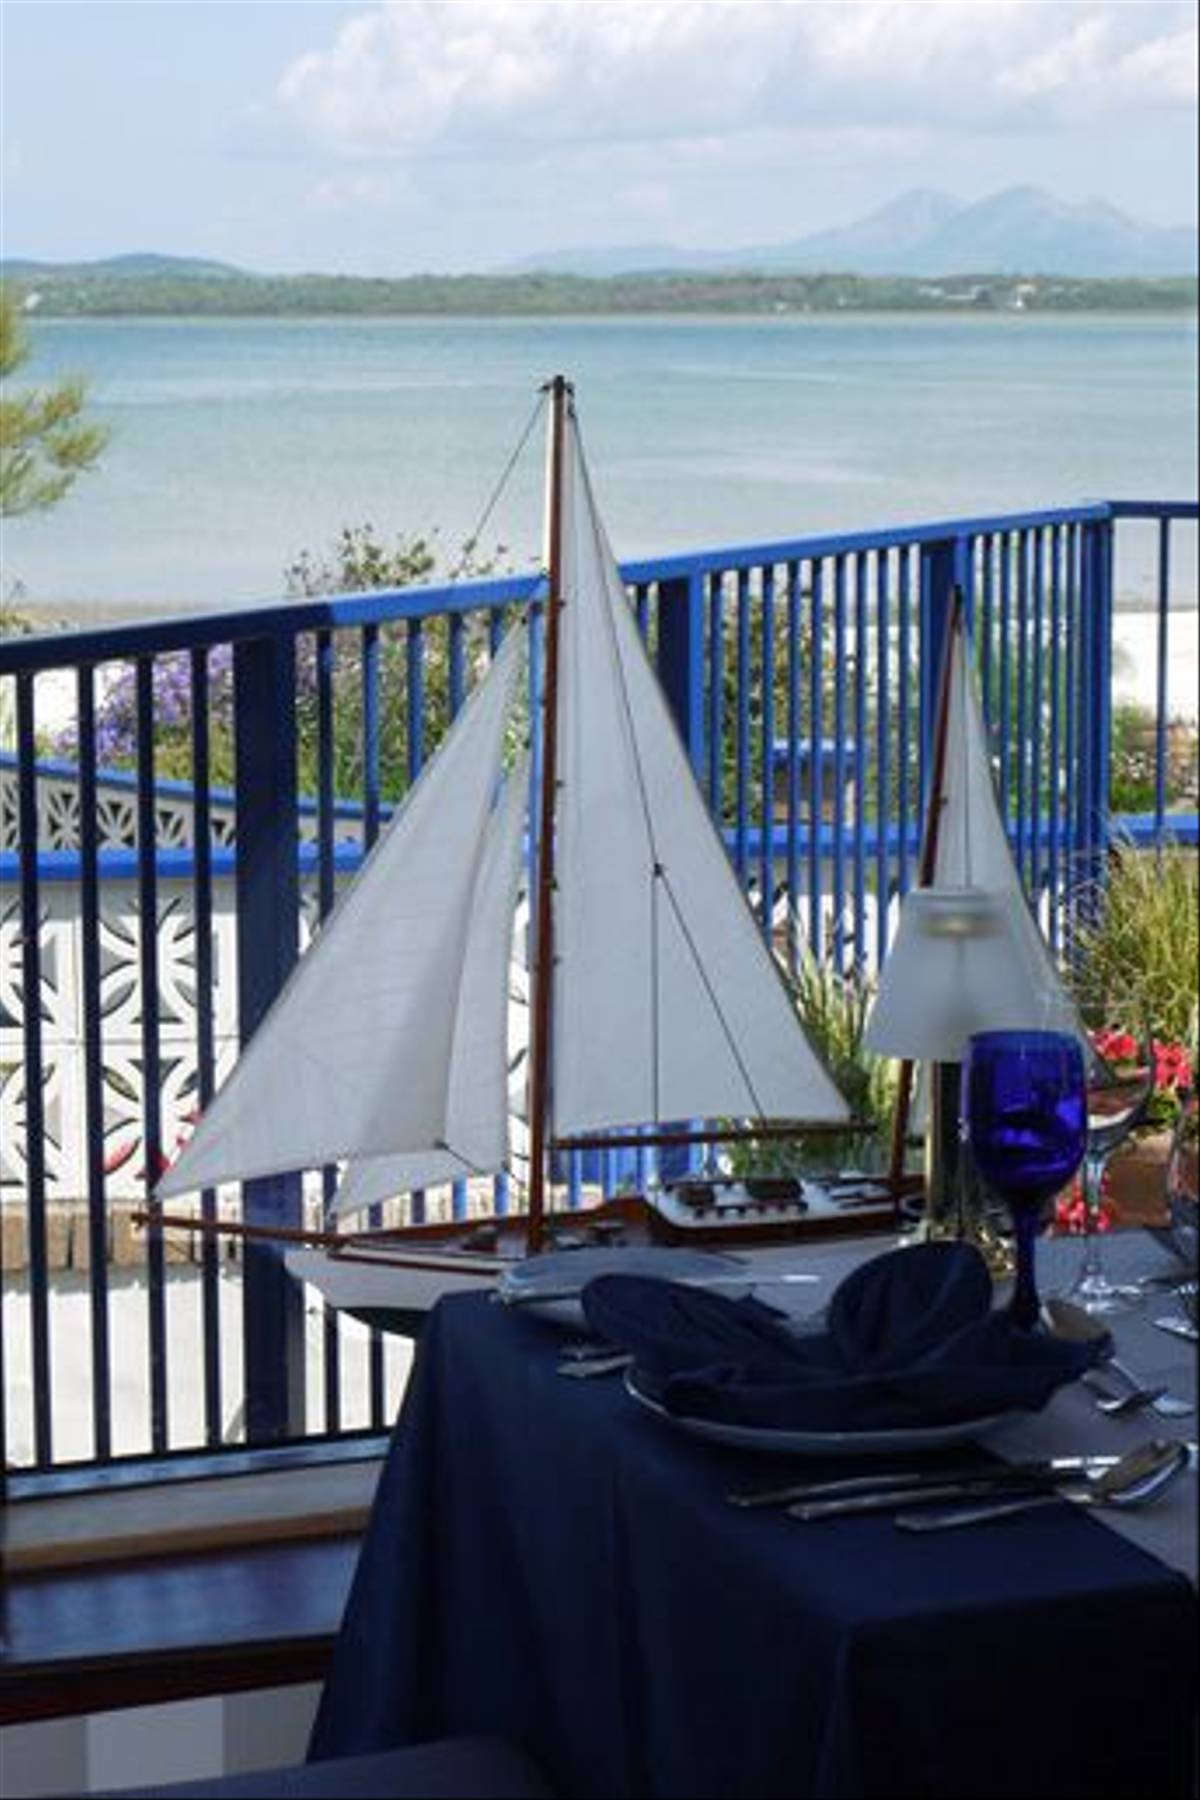 Harbour Inn Hotel, table view